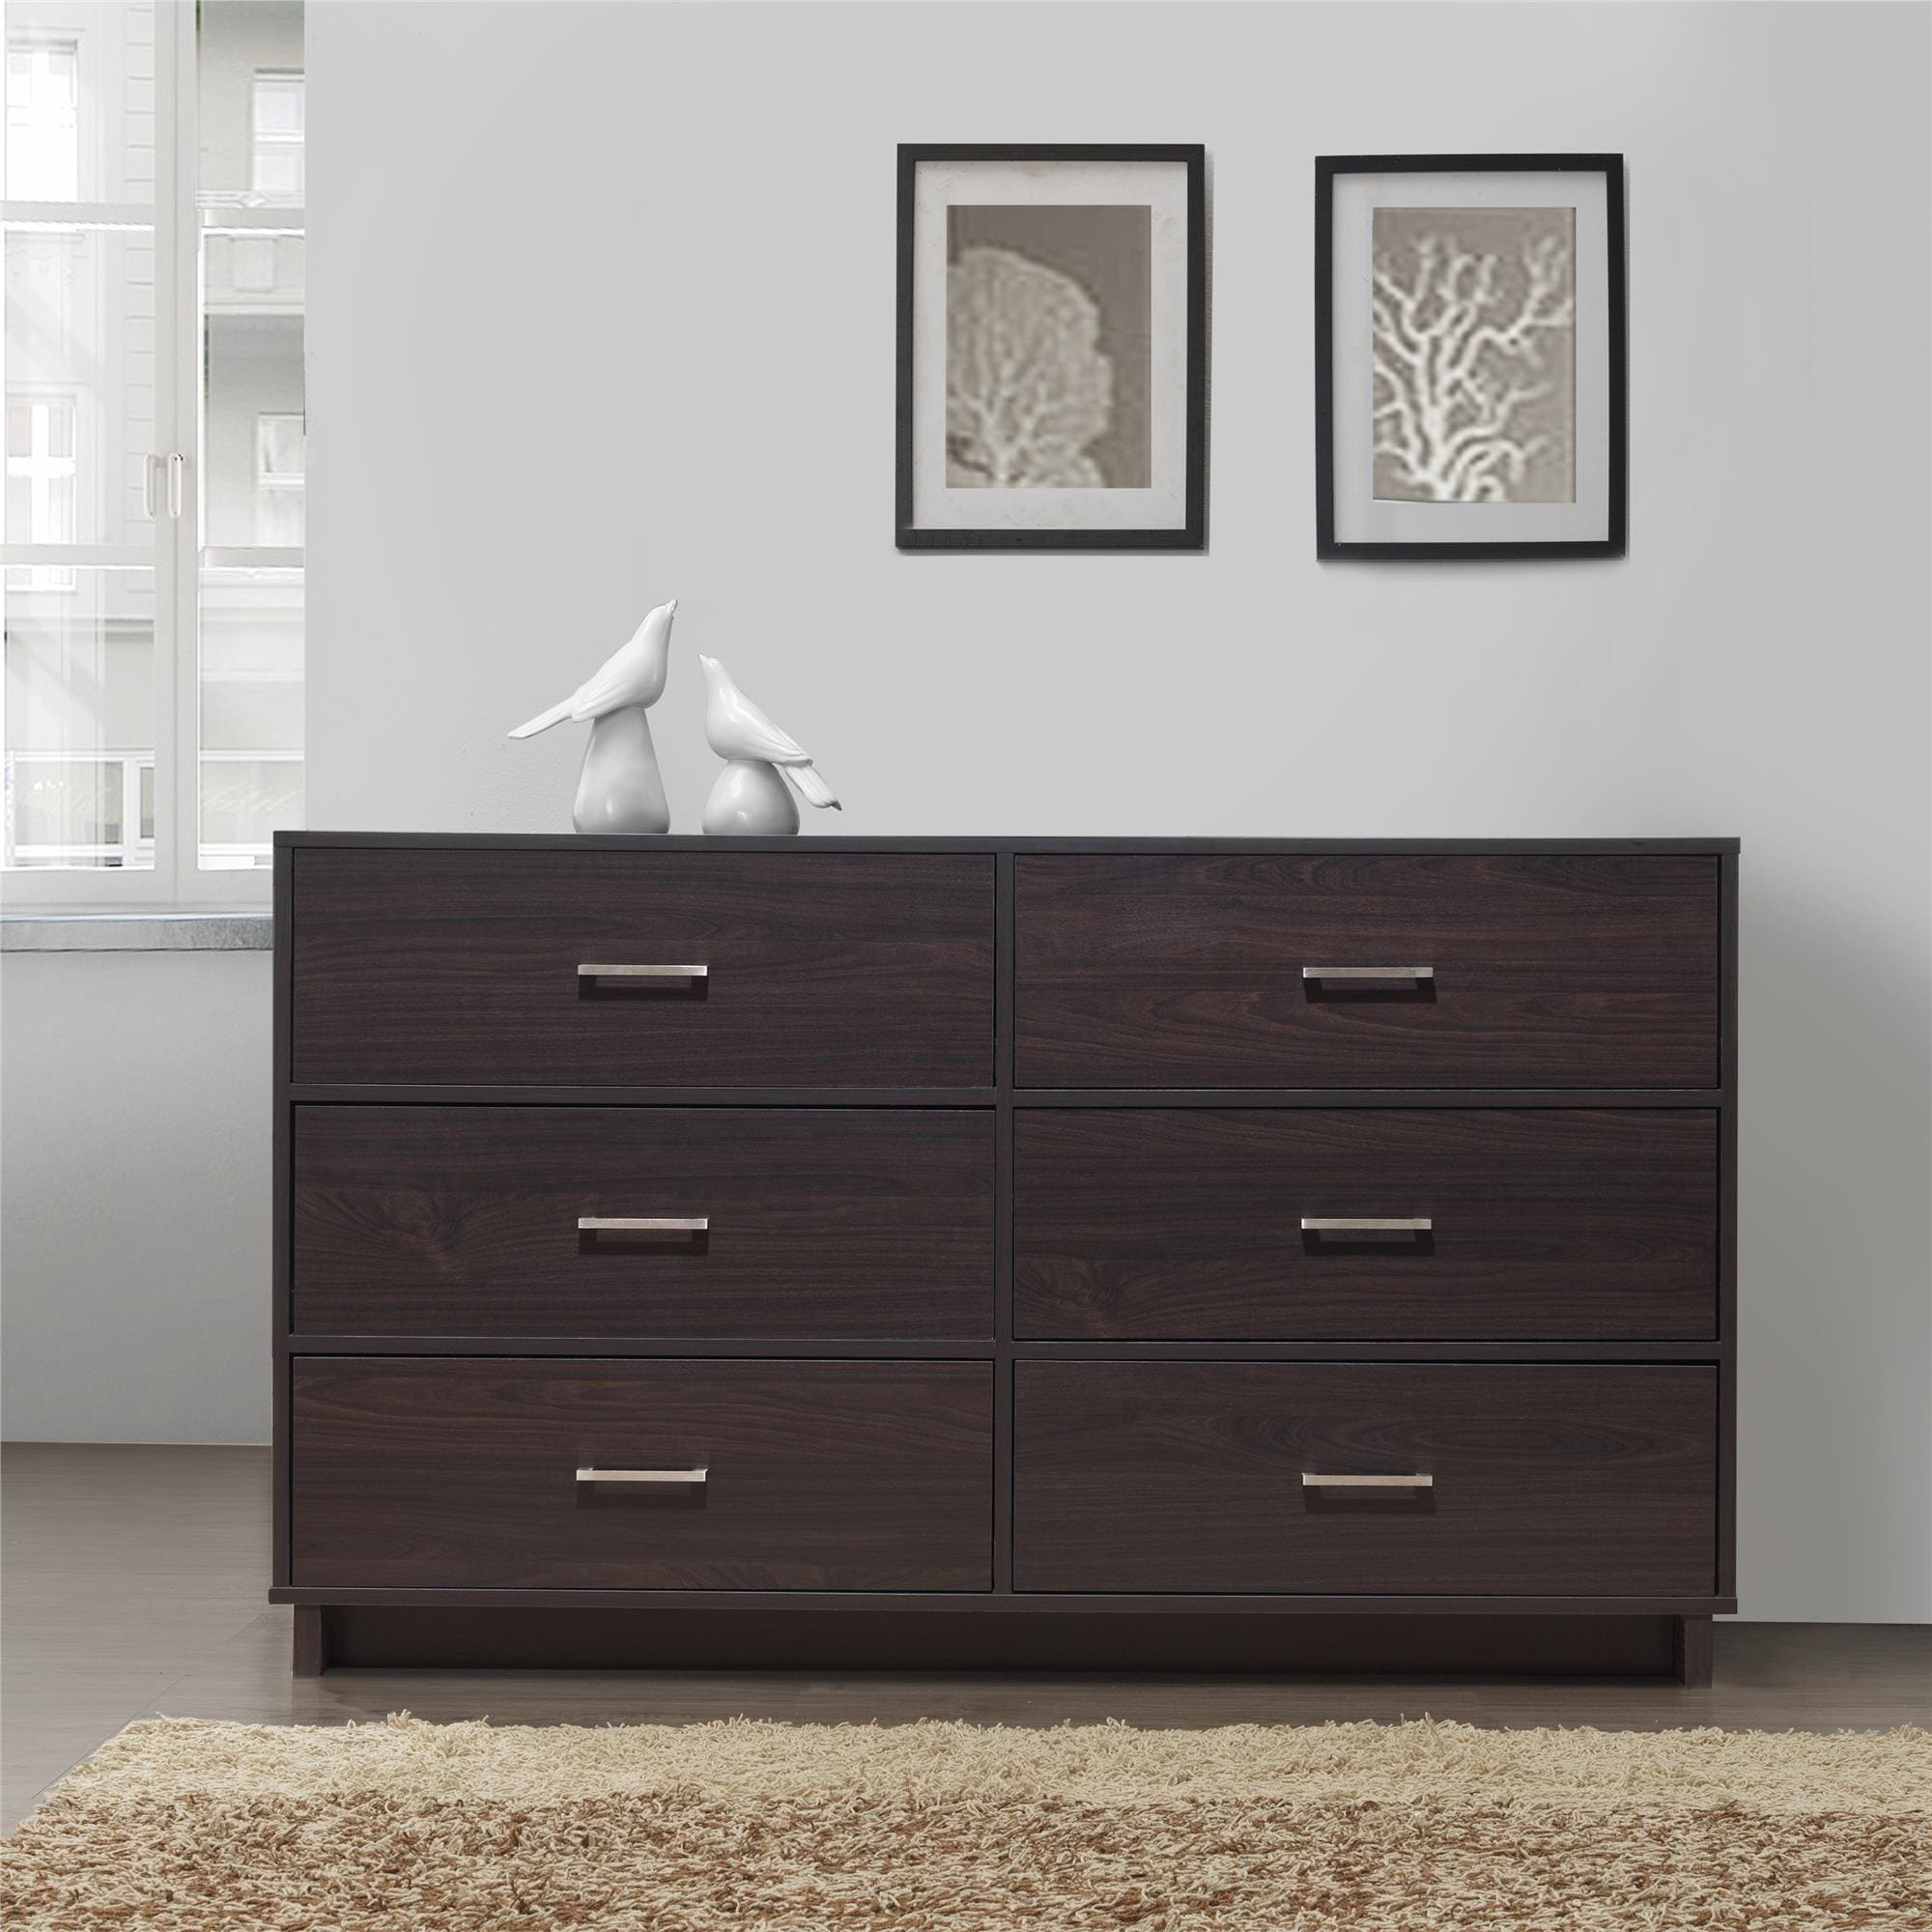 wayfair dresser reviews langley pdx parocela street drawer furniture